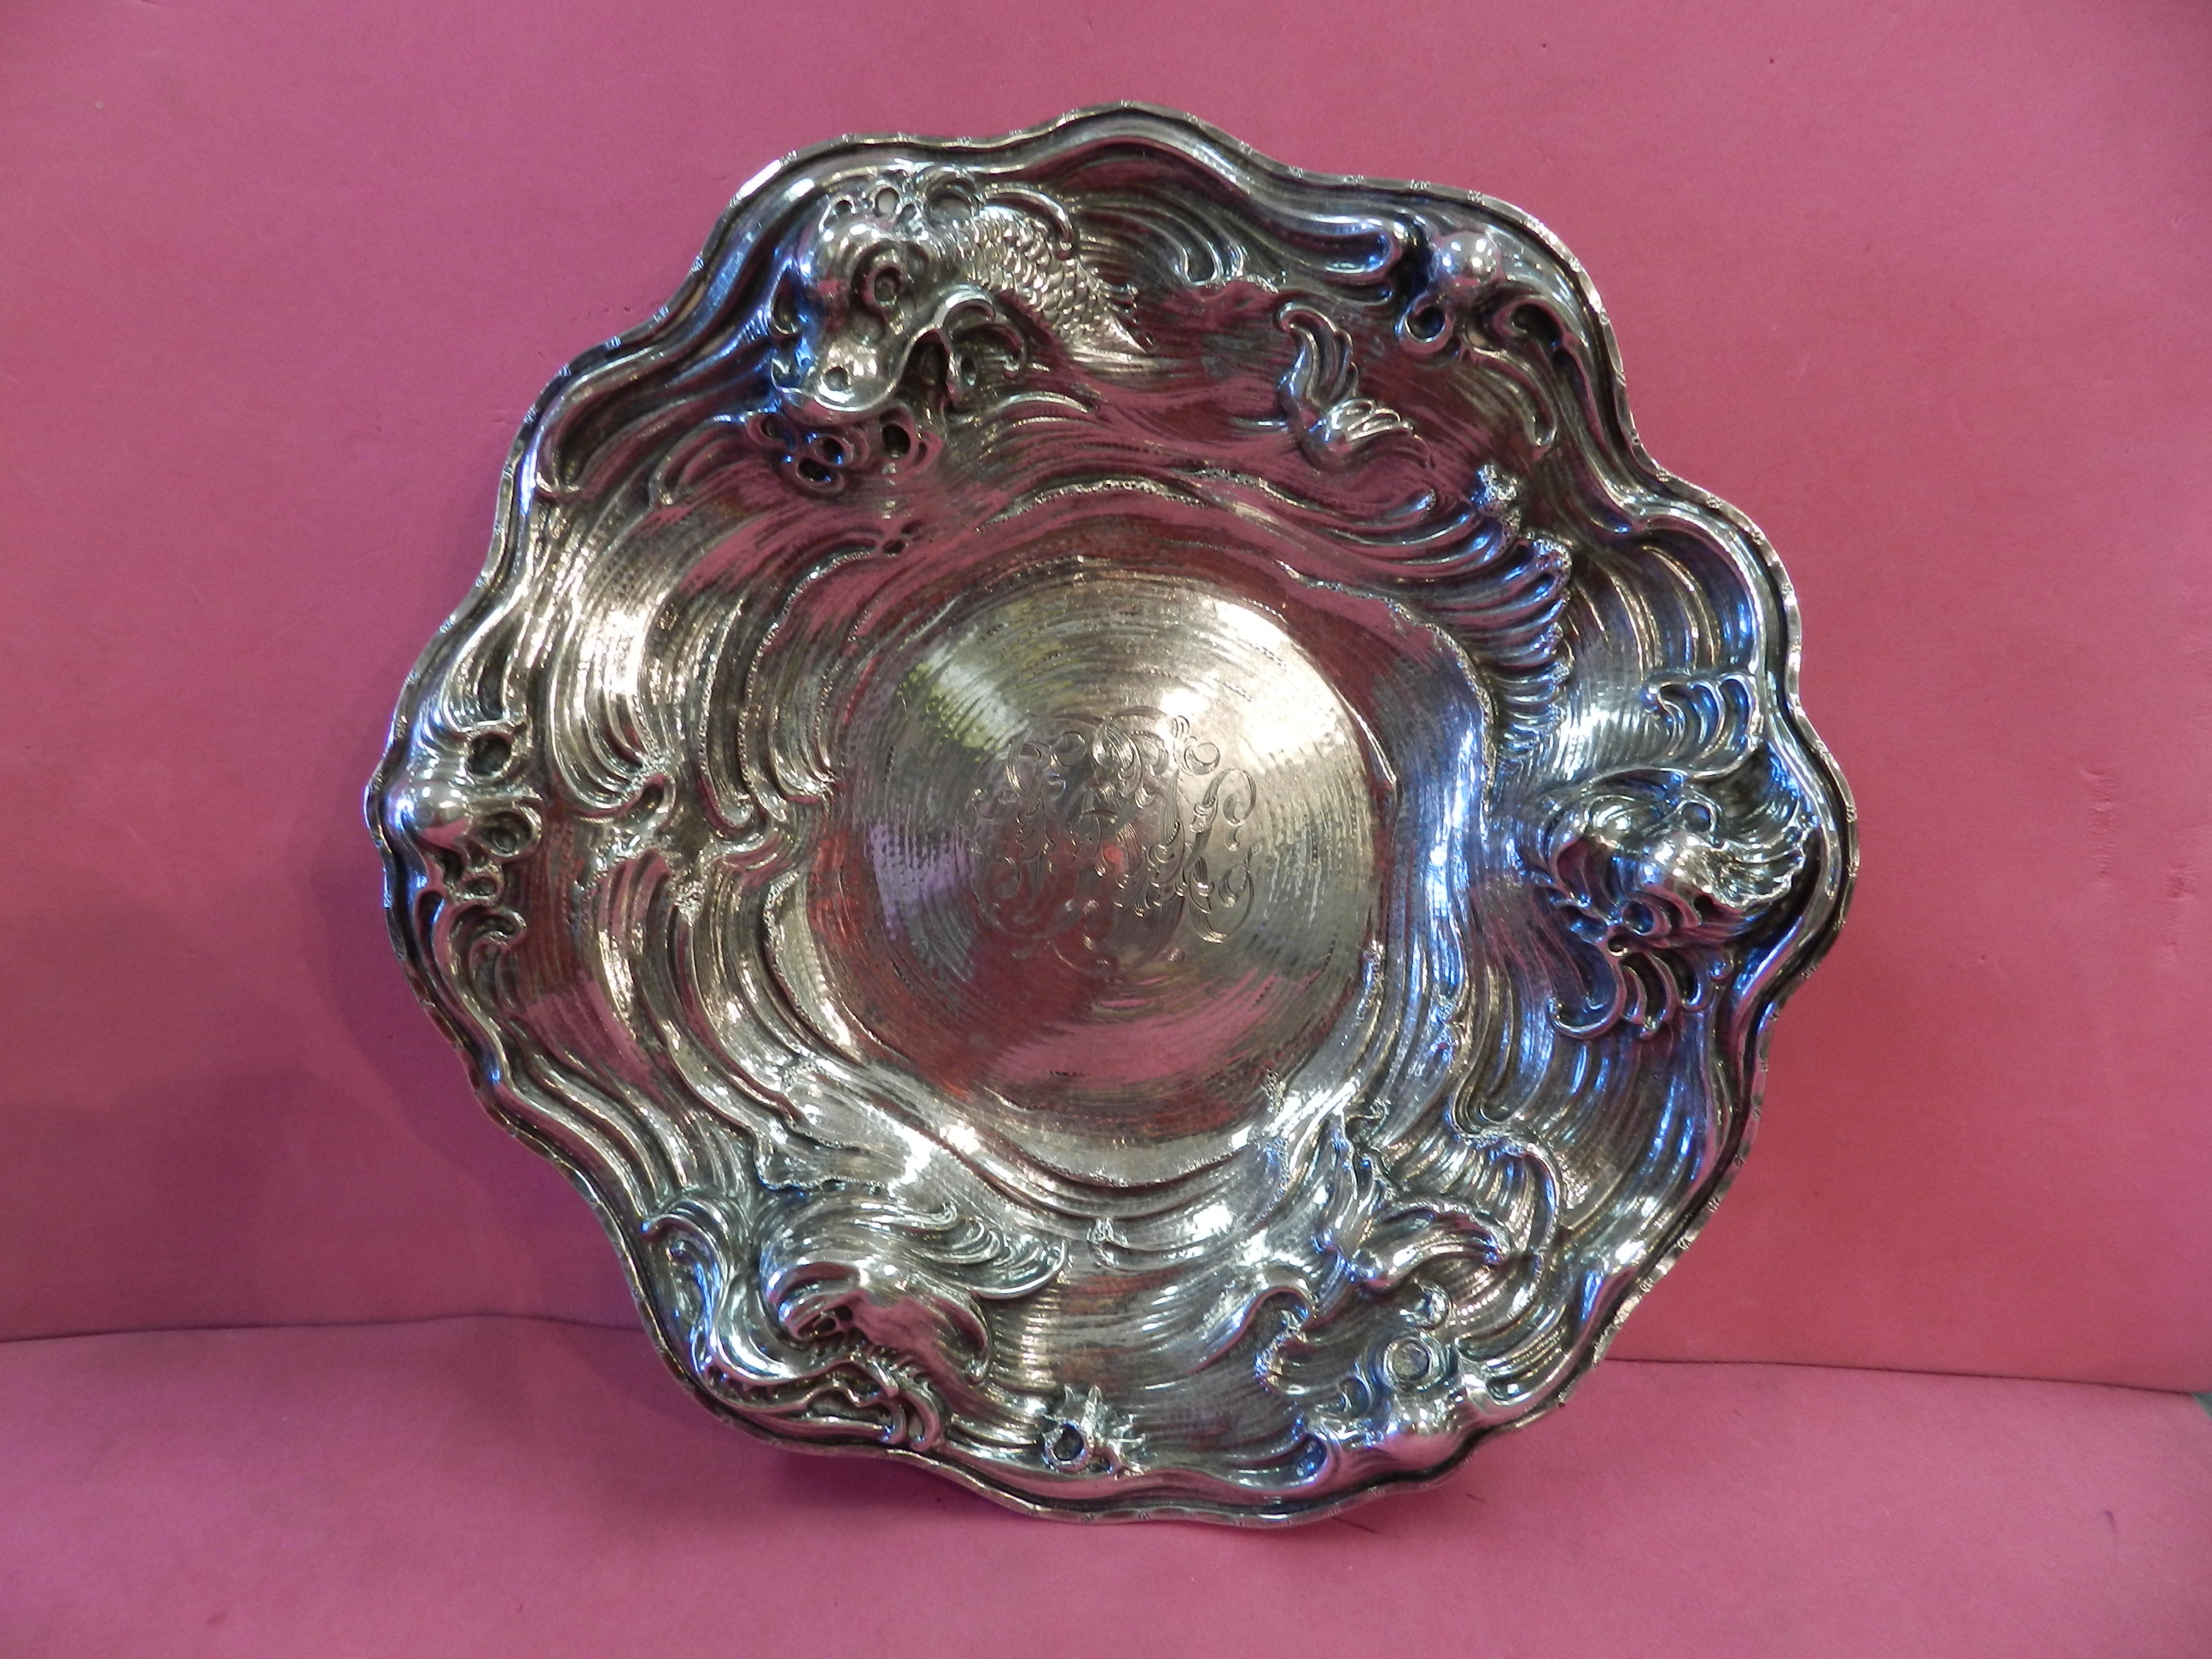 ART NOUVEAU STERLING SILVER BOWL